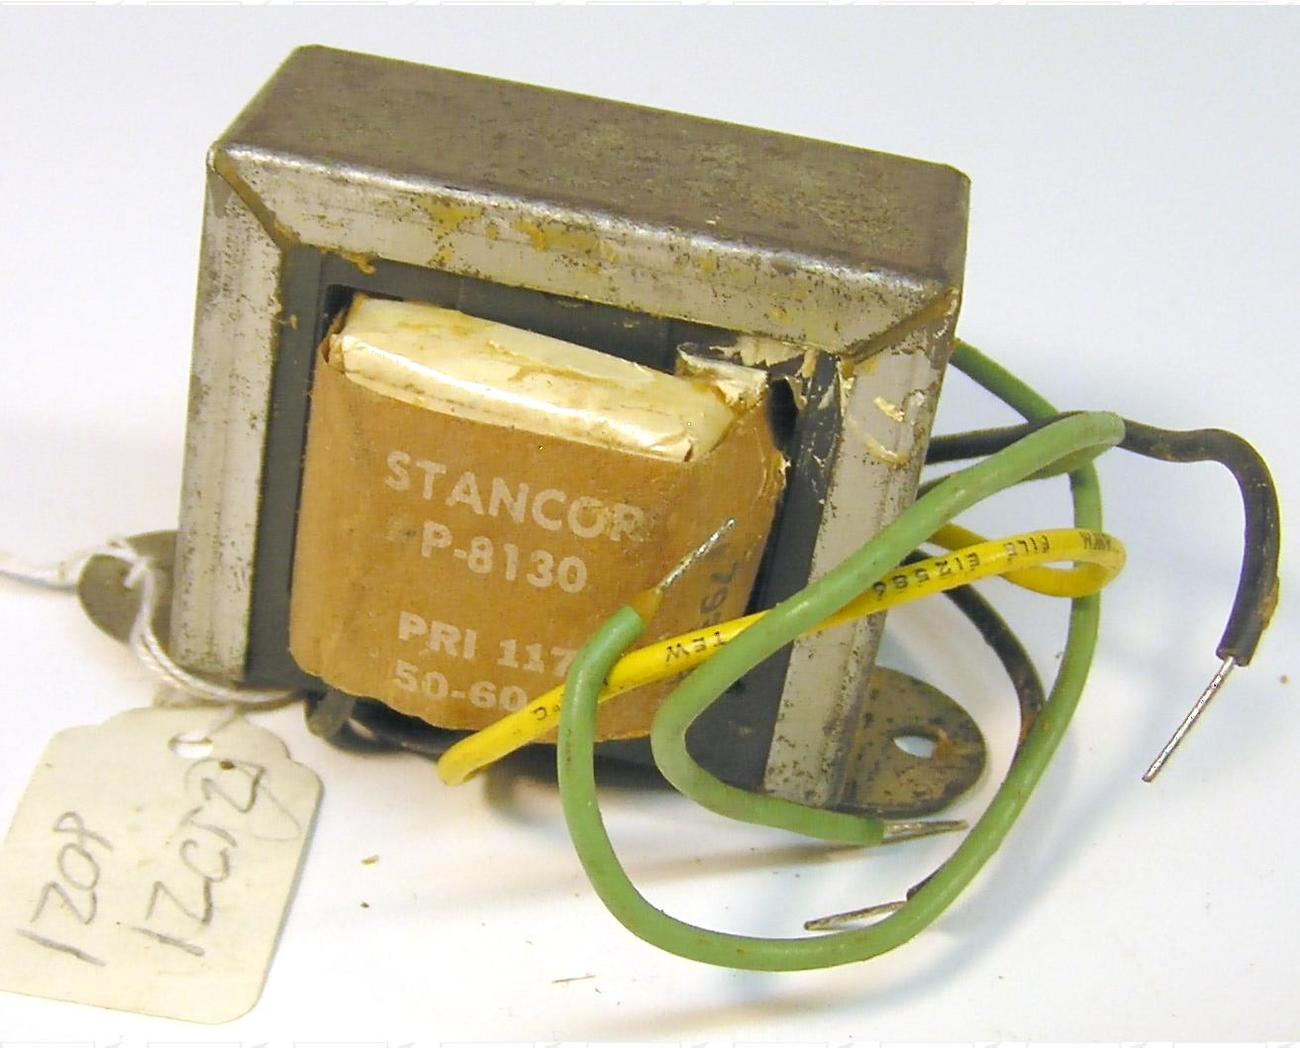 Filament Transformer 117 VAC To 12.6 VCT 2 A Stancor P-8130